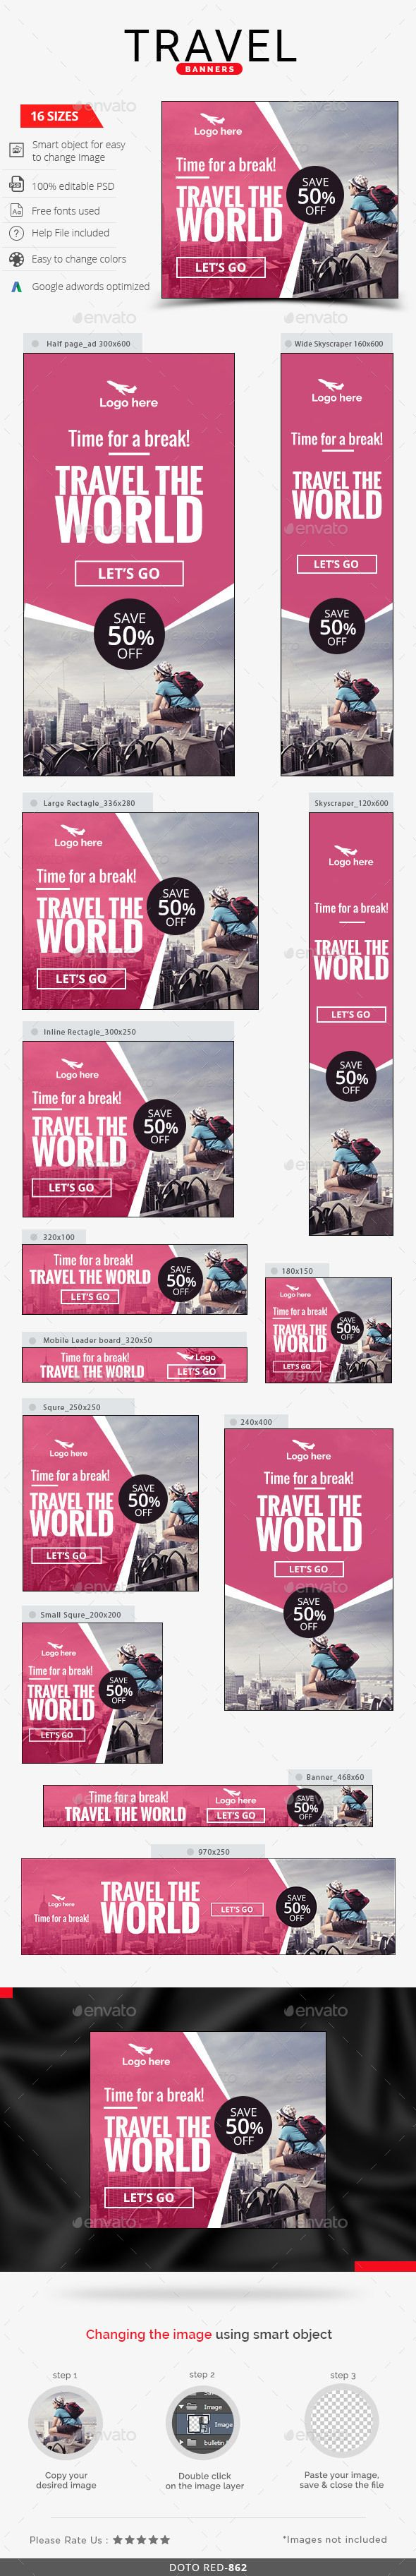 16 sizes travel web banners template psd design ads download http - Banner Design Ideas